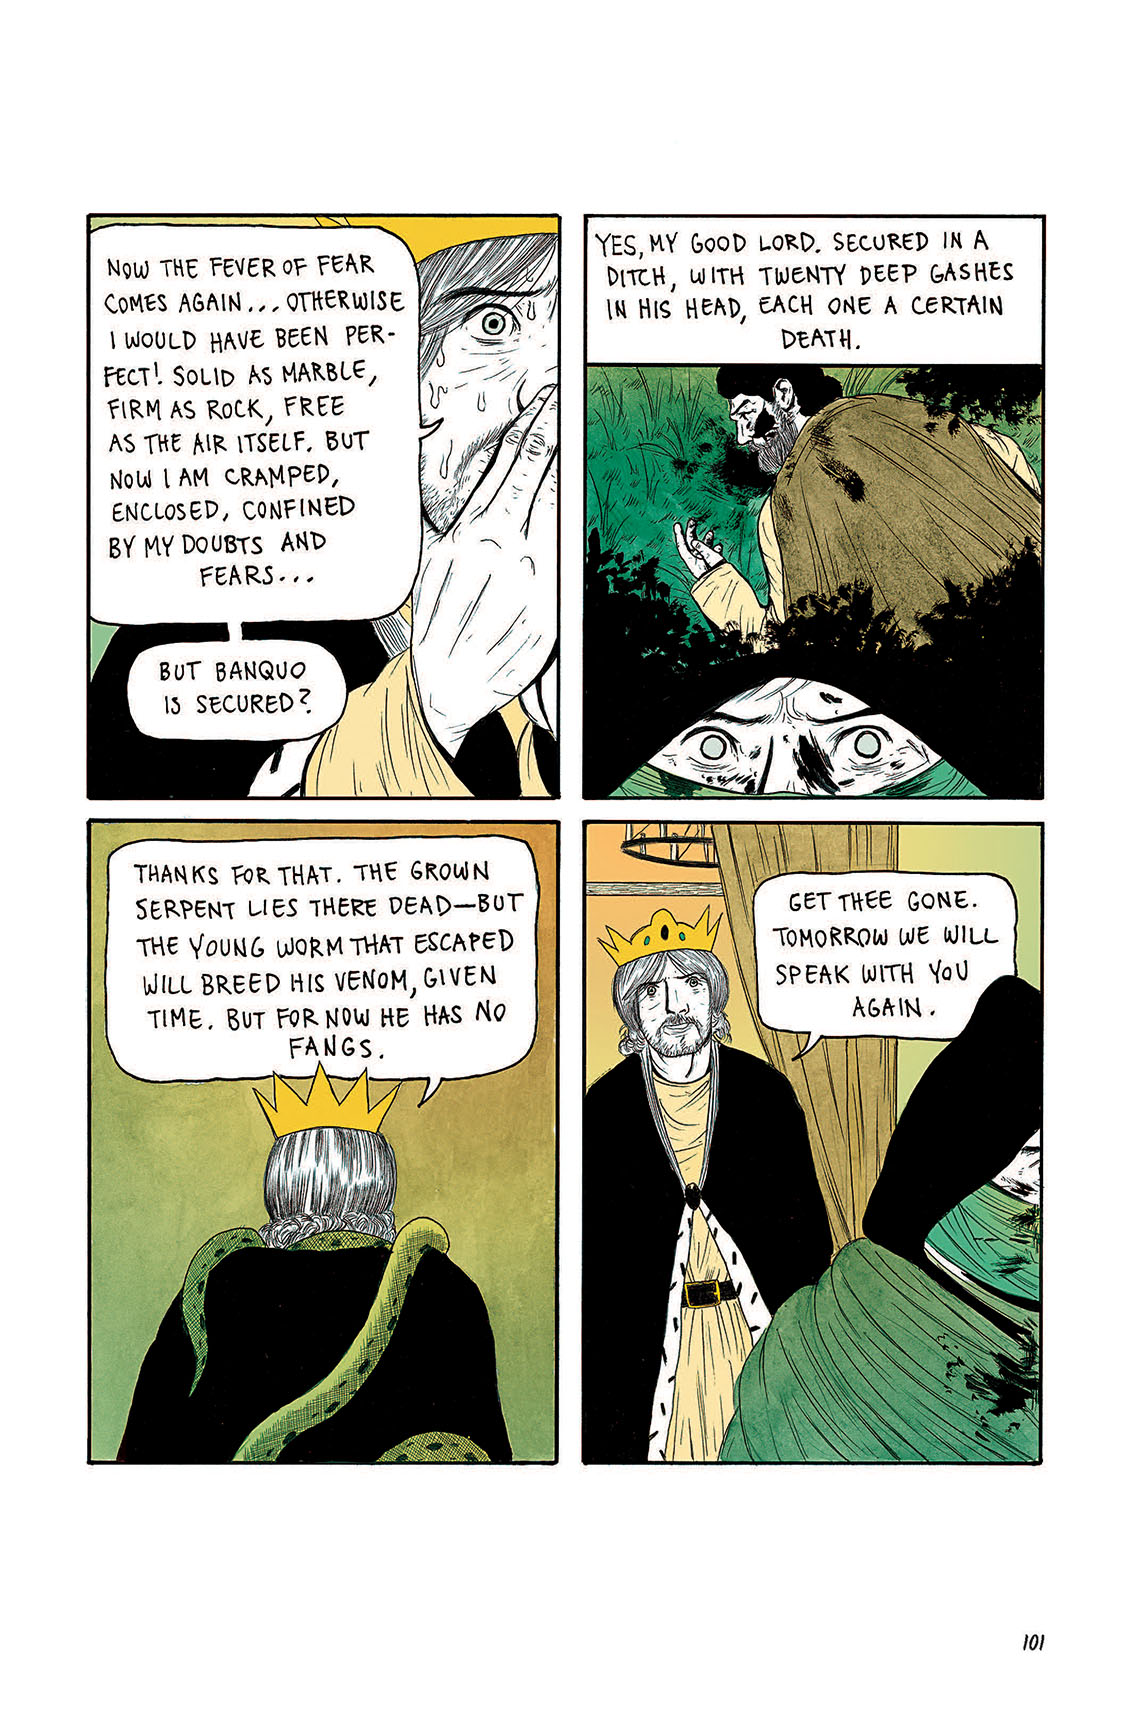 Macbeth Act 3 Scene 4 Page 101 Graphic Novel Sparknotes Sparknote 6